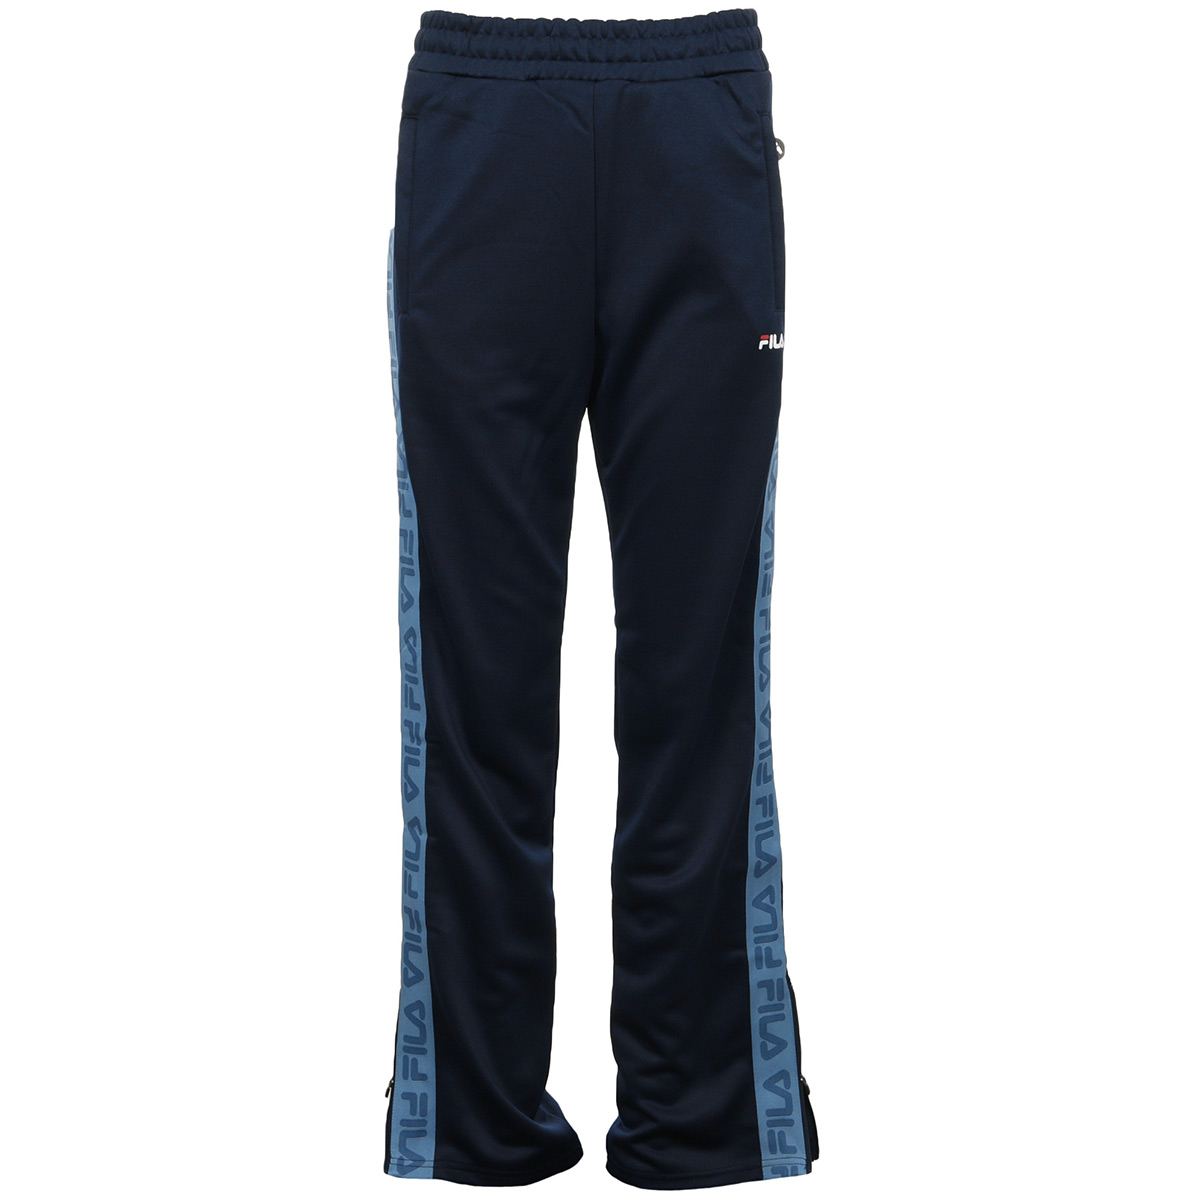 Fila Wn's Thora Track Pants